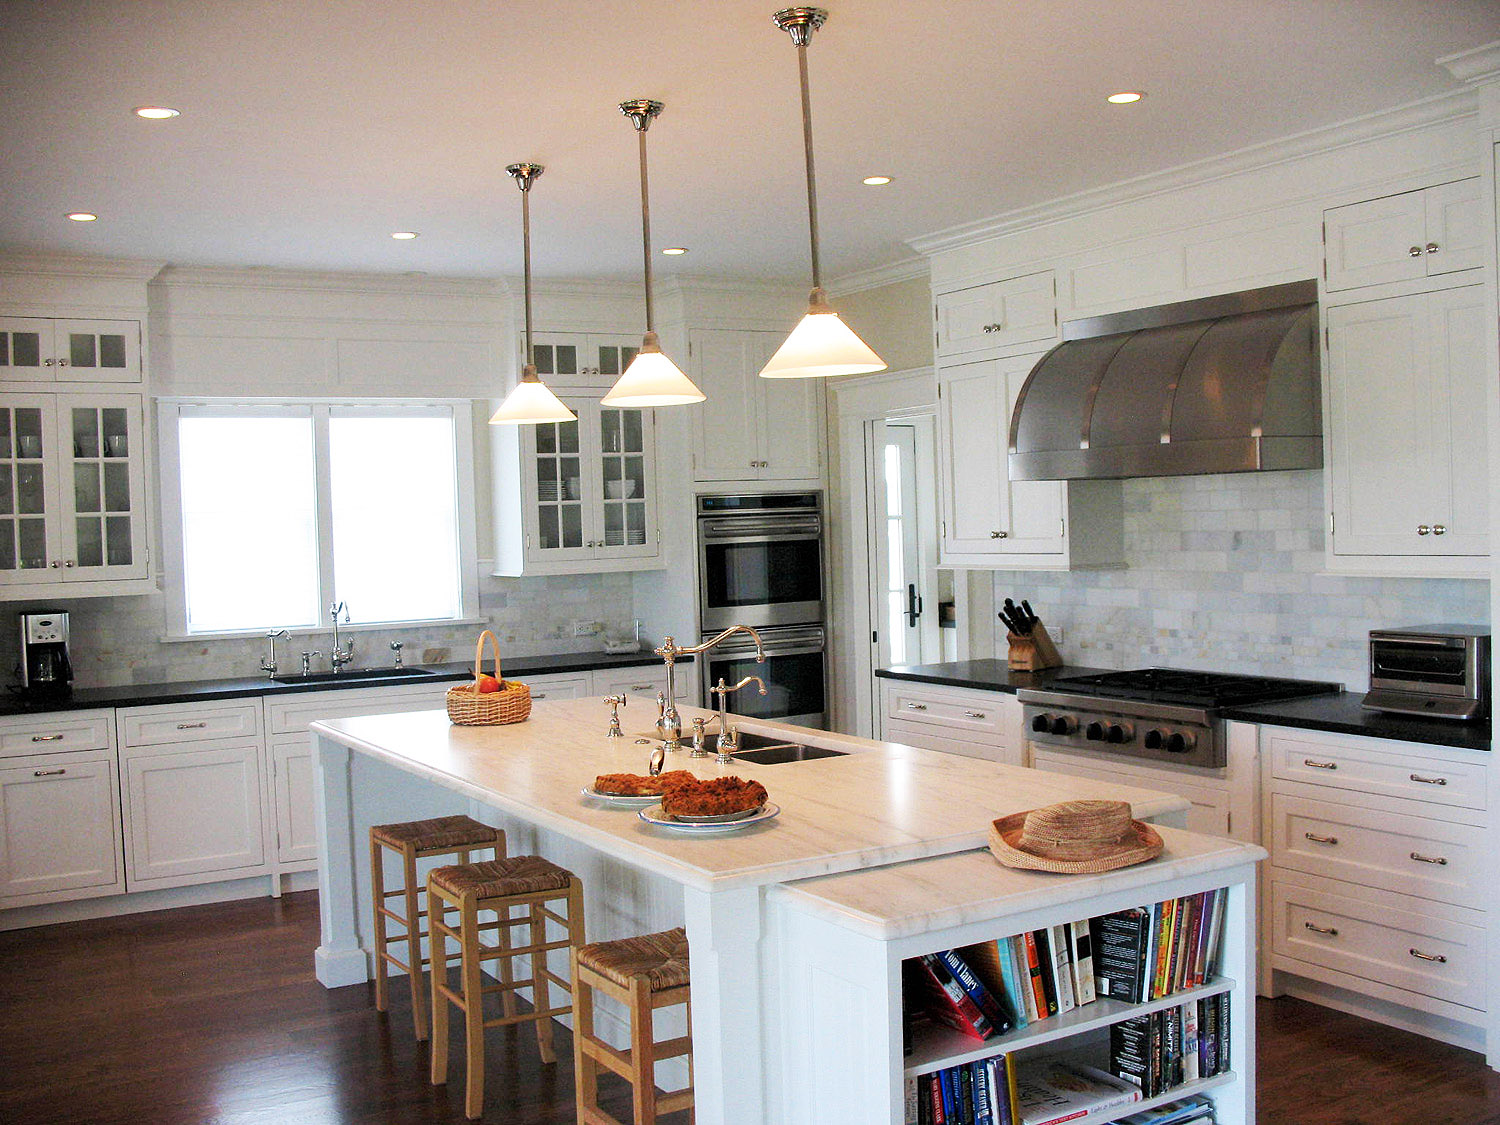 Kitchen Cabinets For Sale Albany Ny Wholesale Kitchen Cabinets New York Wholesale Kitchen